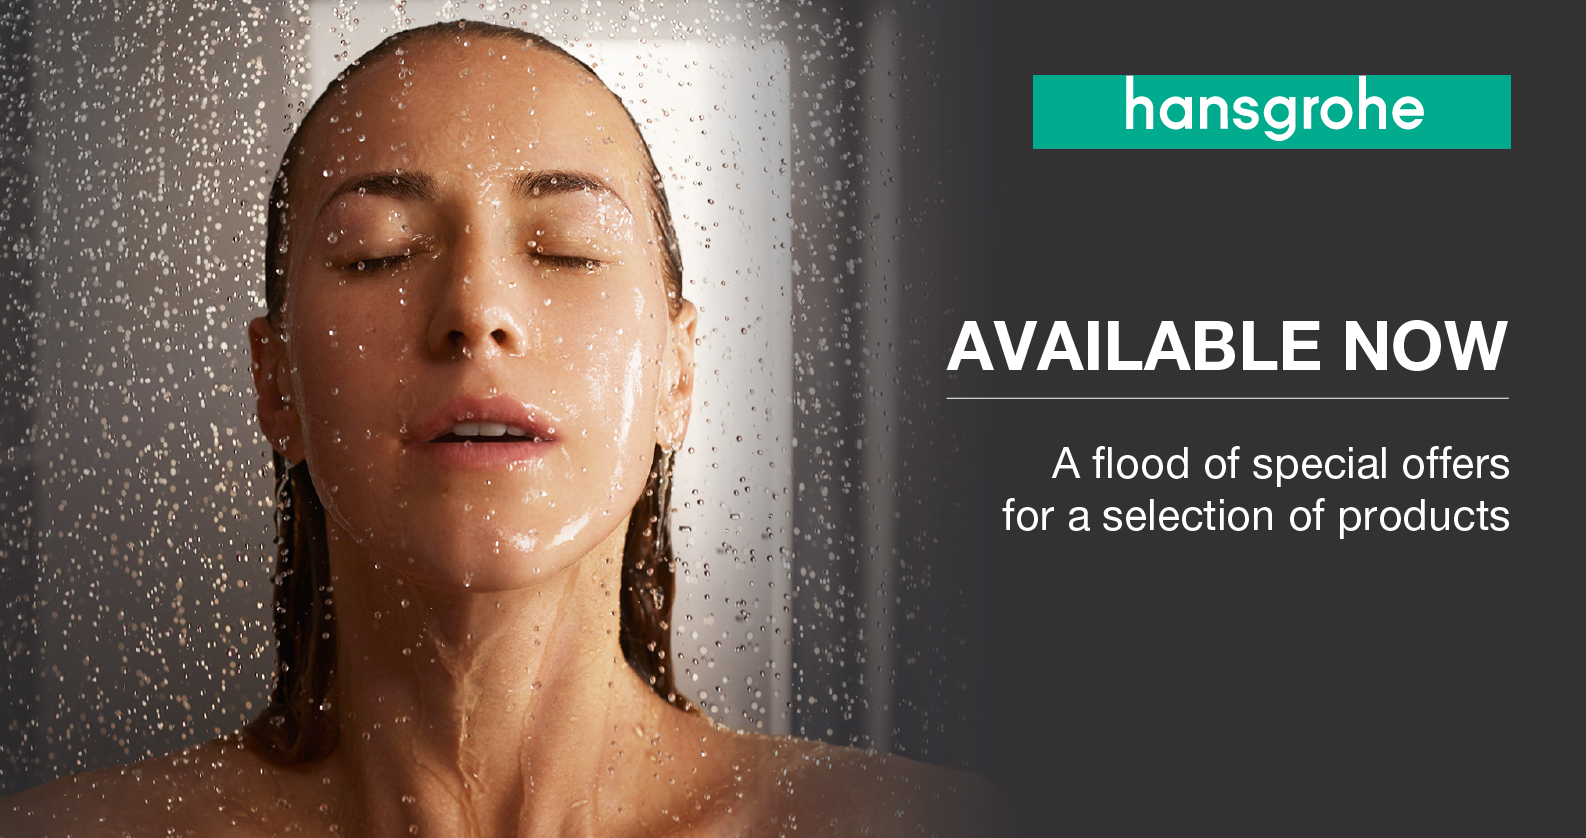 hansgrohe promotion